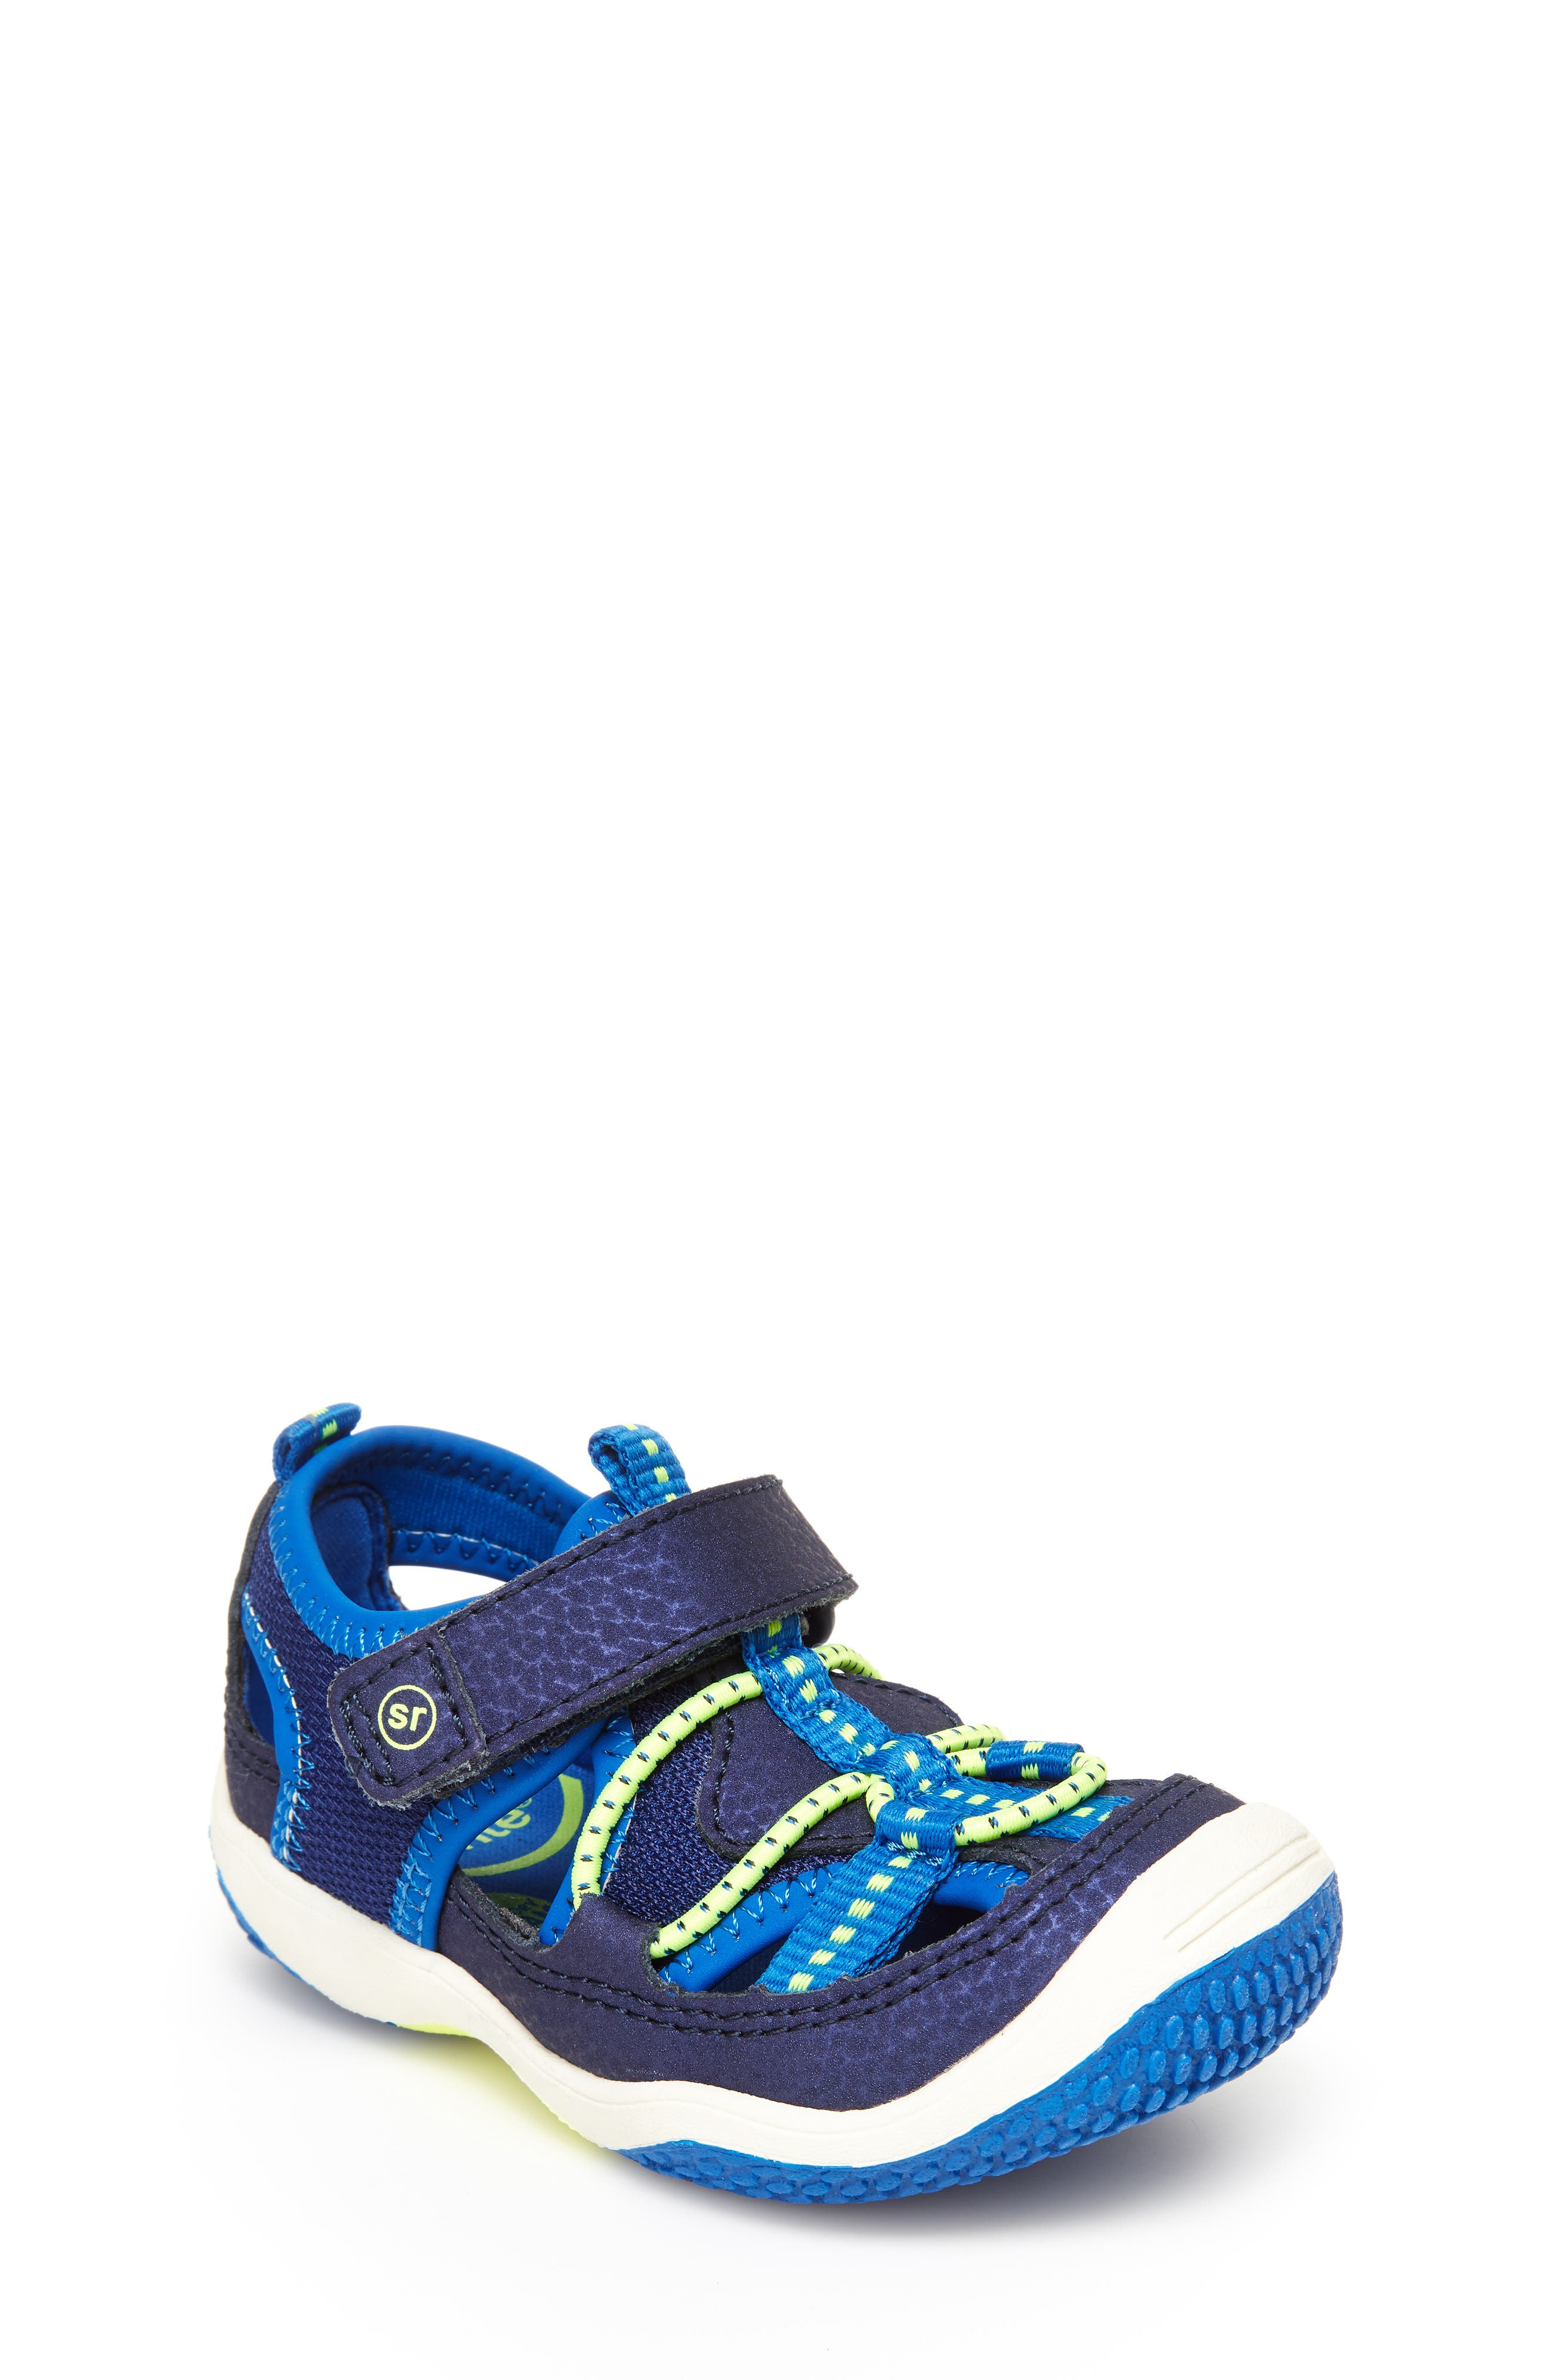 STRIDE RITE,                             Marina Water Sandal,                             Main thumbnail 1, color,                             ELECTRIC BLUE LEATHER/ TEXTILE